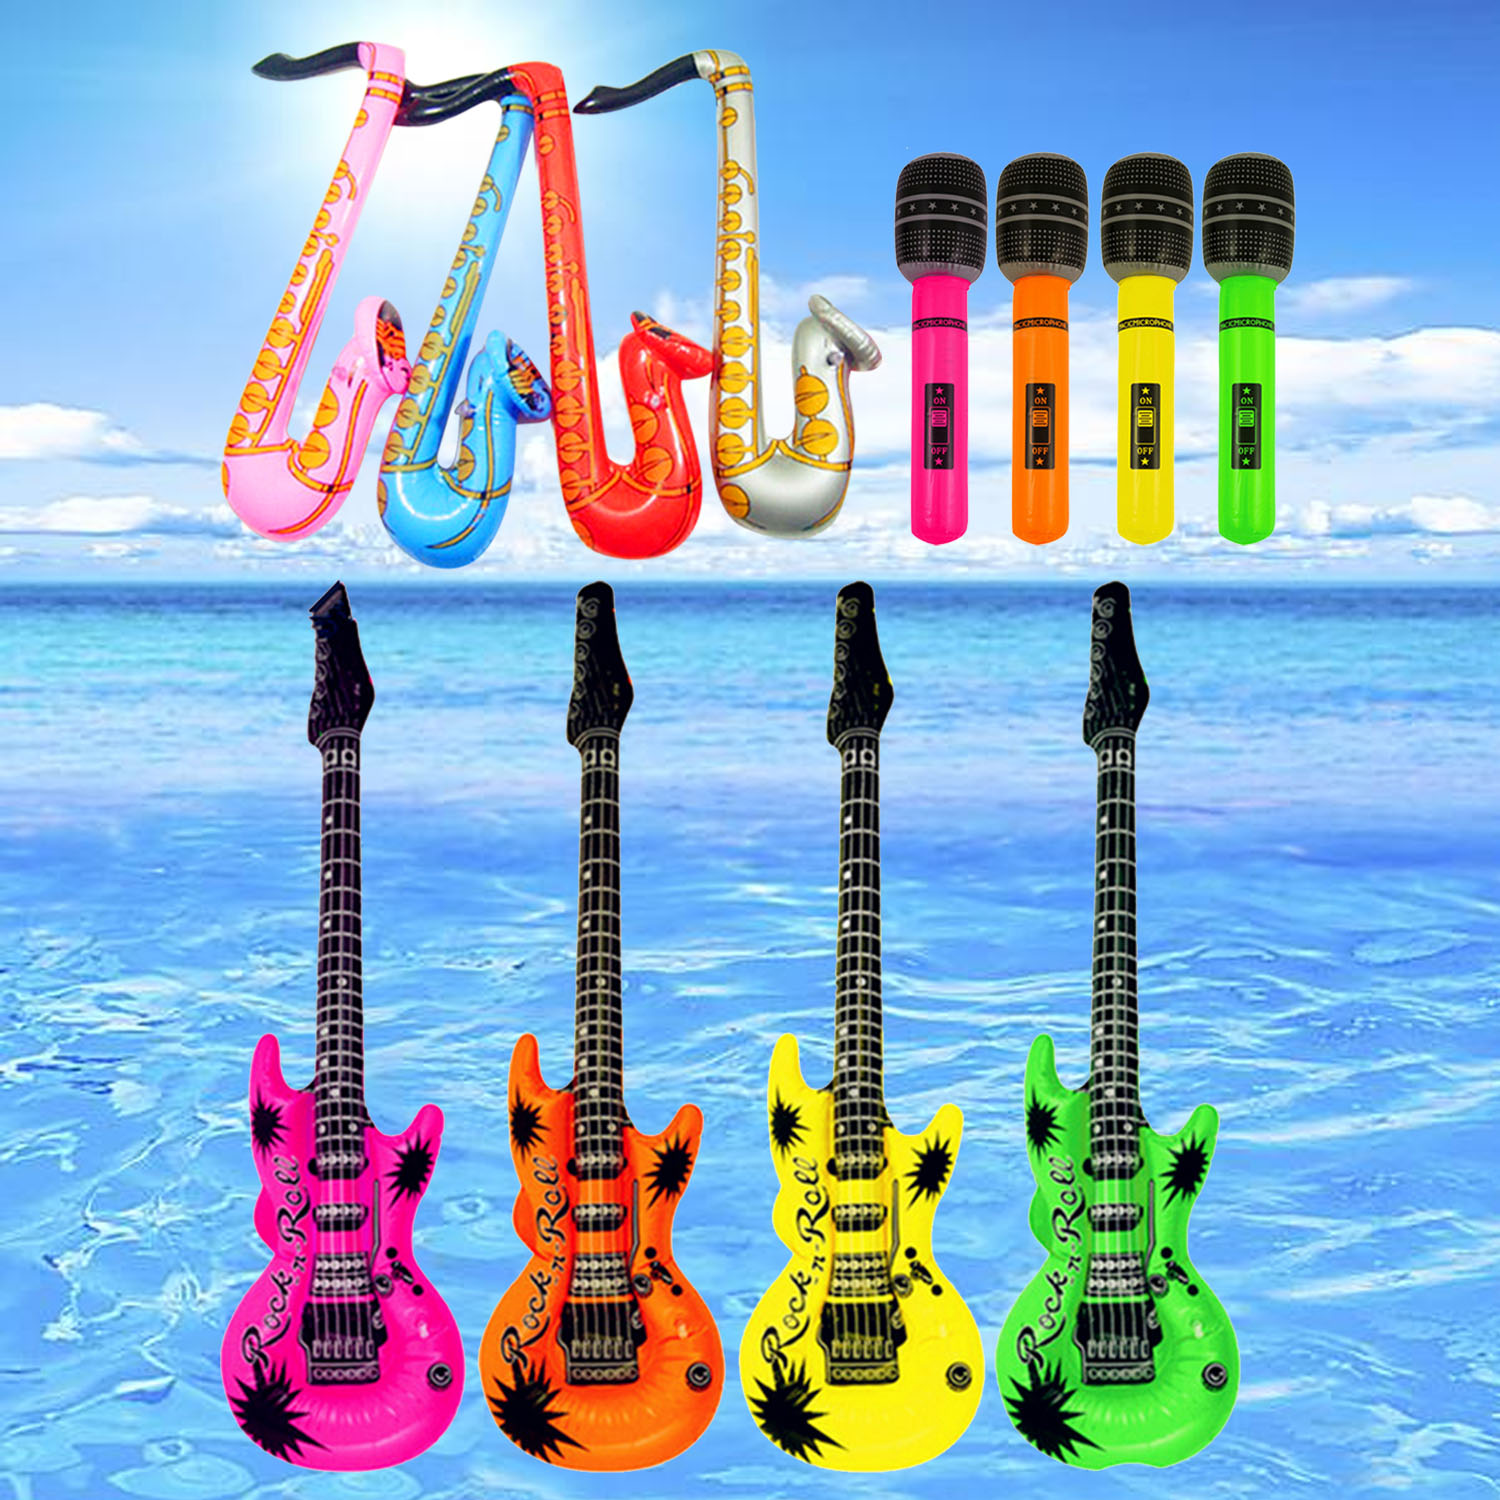 Bevigac 12Pcs Inflatable Guitar Saxophone Microphone Toys for Swimming Pool Party Home Decoration Childrens Day Gift